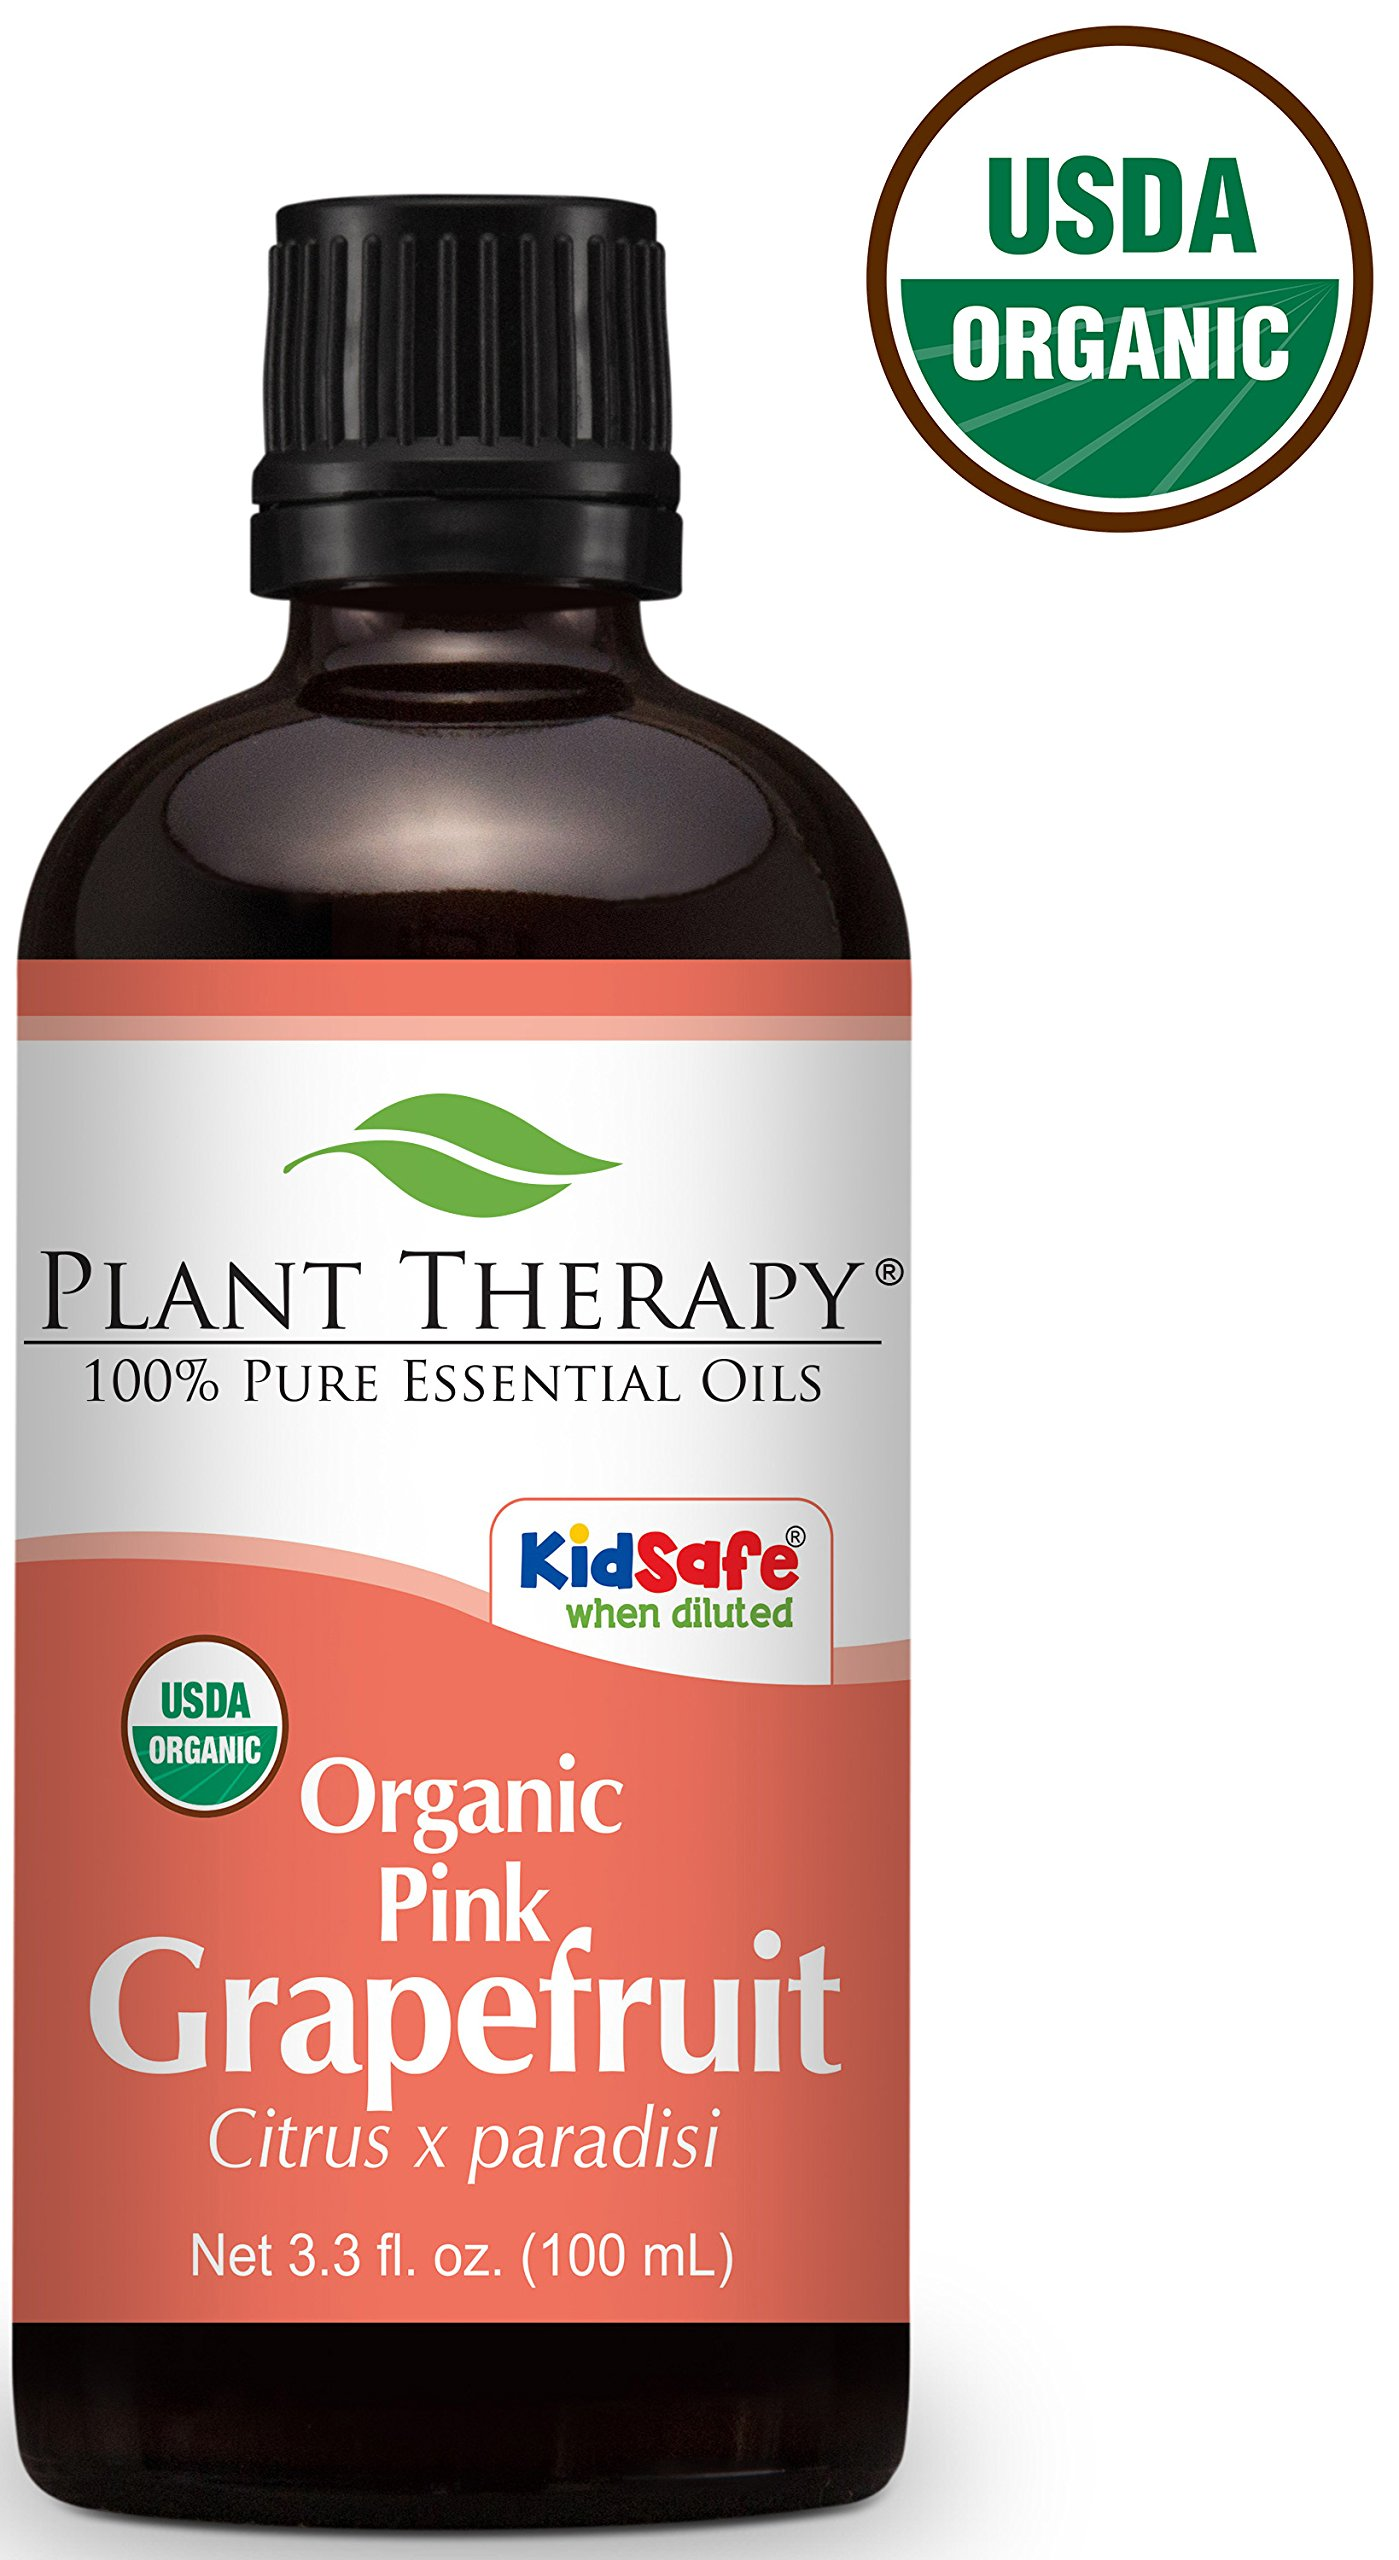 Plant Therapy Grapefruit Pink Organic Essential Oil 100 mL (3.3 oz) 100% Pure, Undiluted, Therapeutic Grade by Plant Therapy